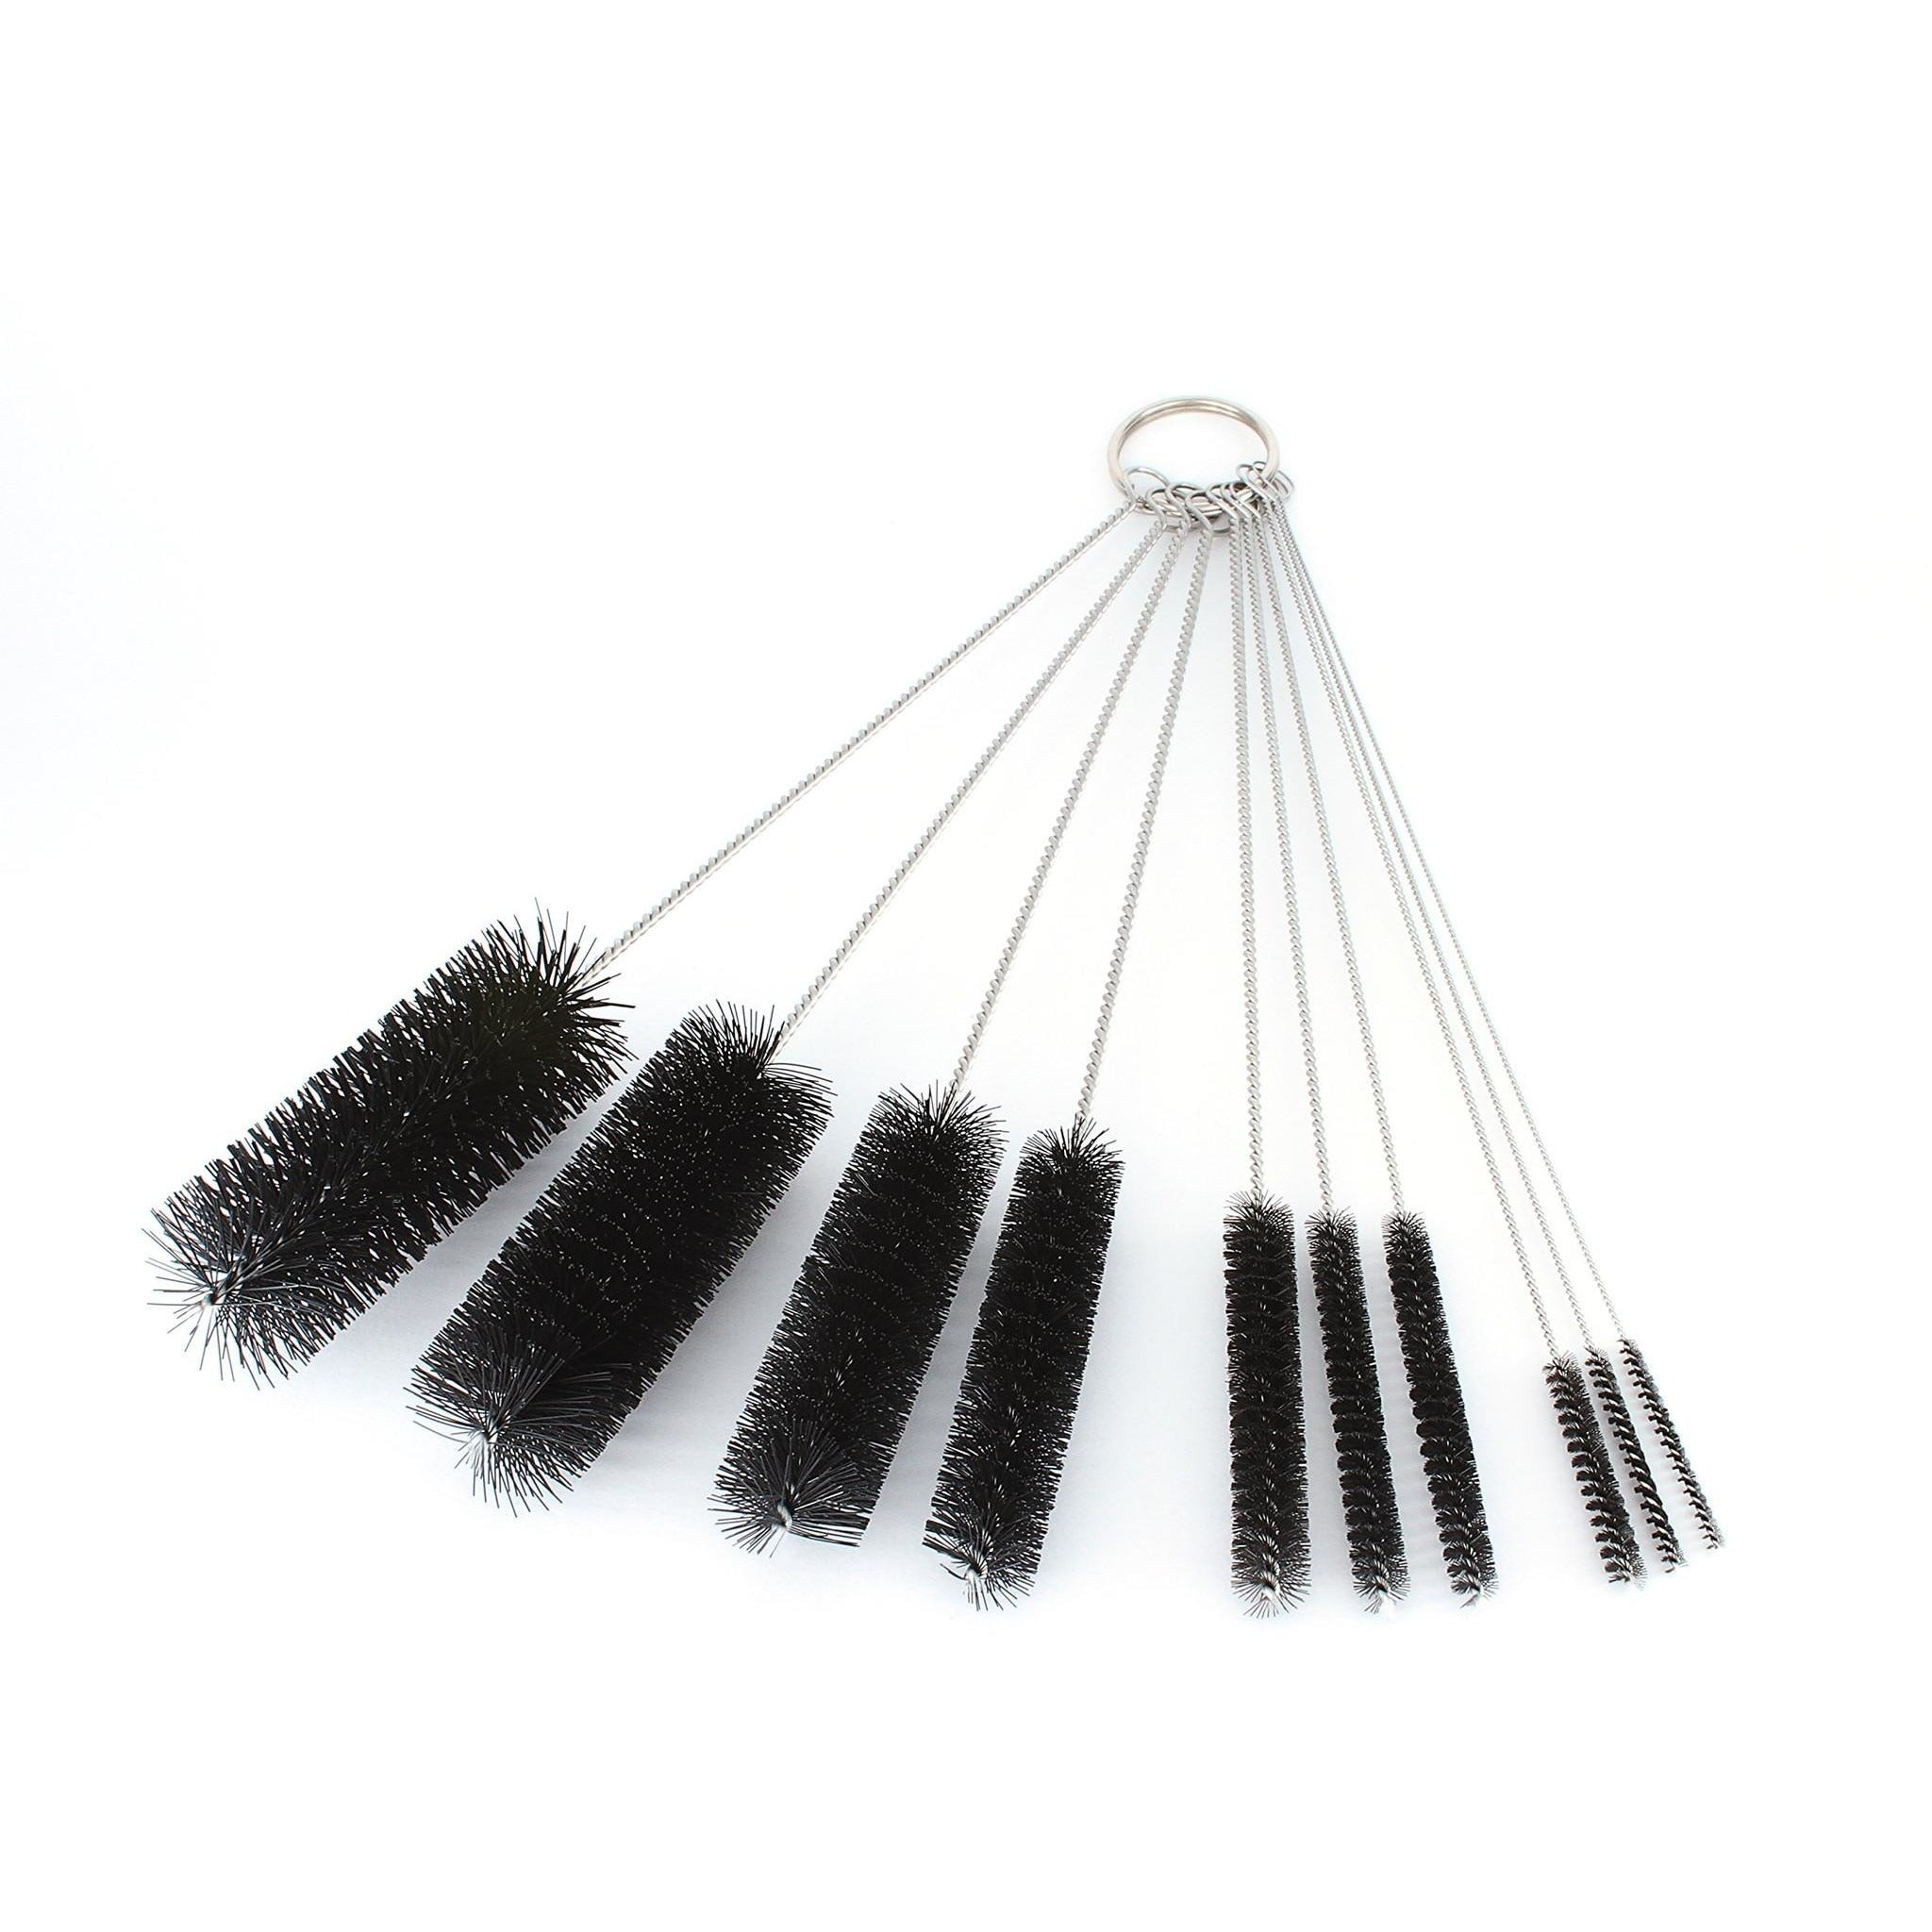 Pipe Cleaners - 8 Inch Nylon Tube Brush Set - Variety Pack 1 set of 10 pieces - WoodStonePipes.com   - 1